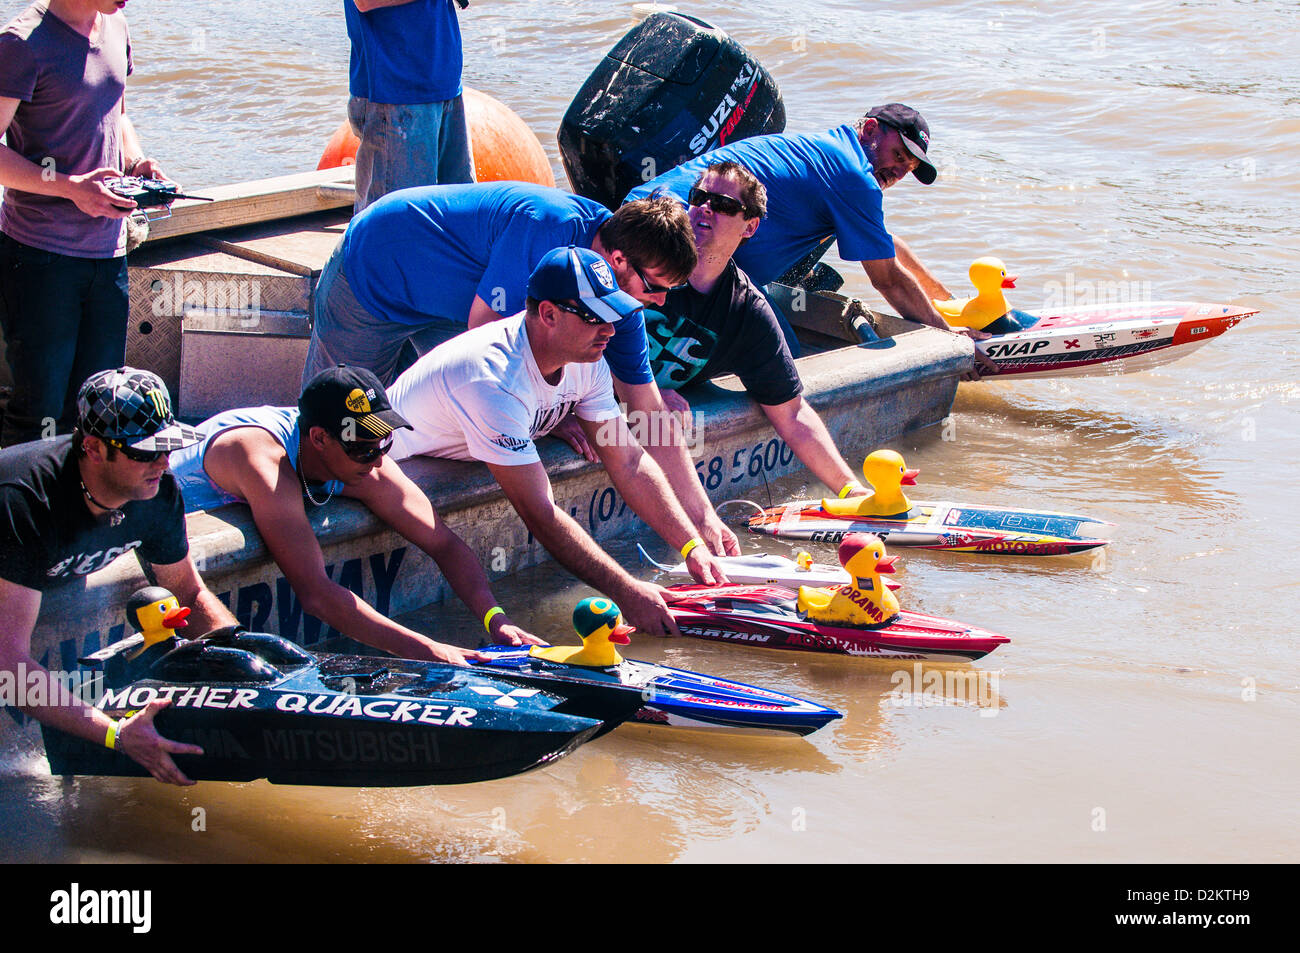 Rubby Ducky boat race, Brisbane River, Queensland, Australia - Stock Image